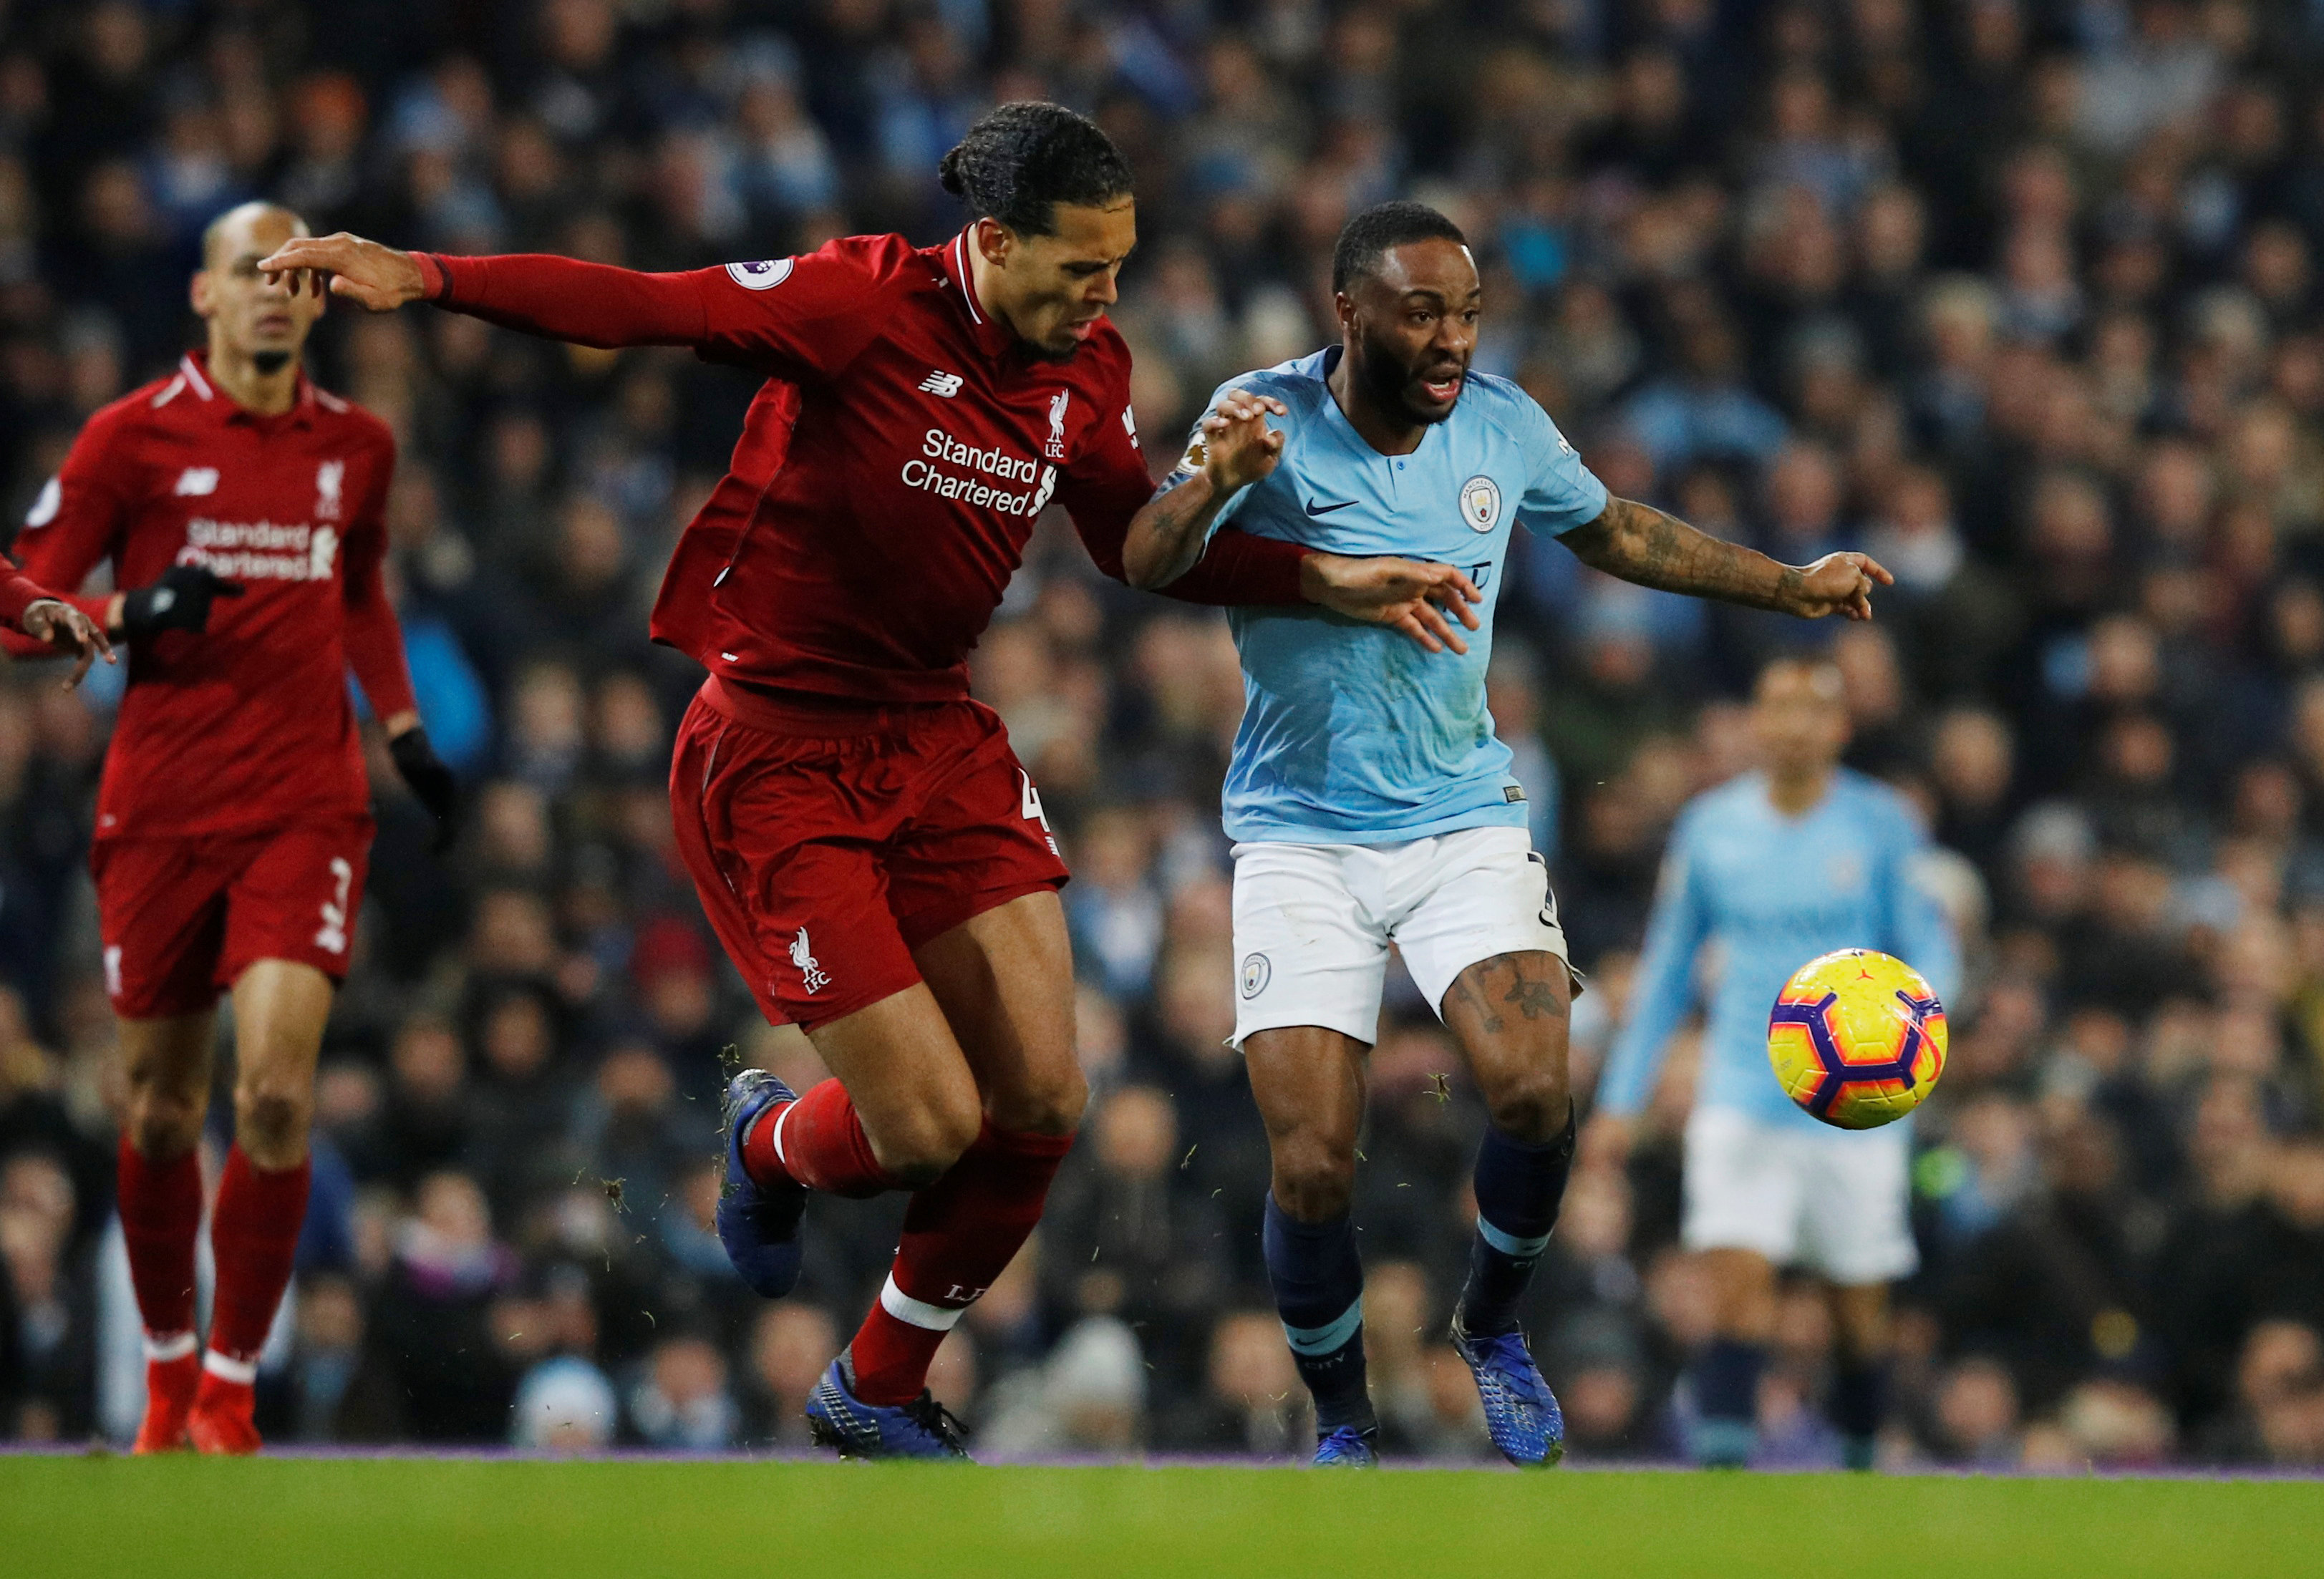 Football - Etranger - Premier League : Manchester City et Liverpool seuls au monde ?